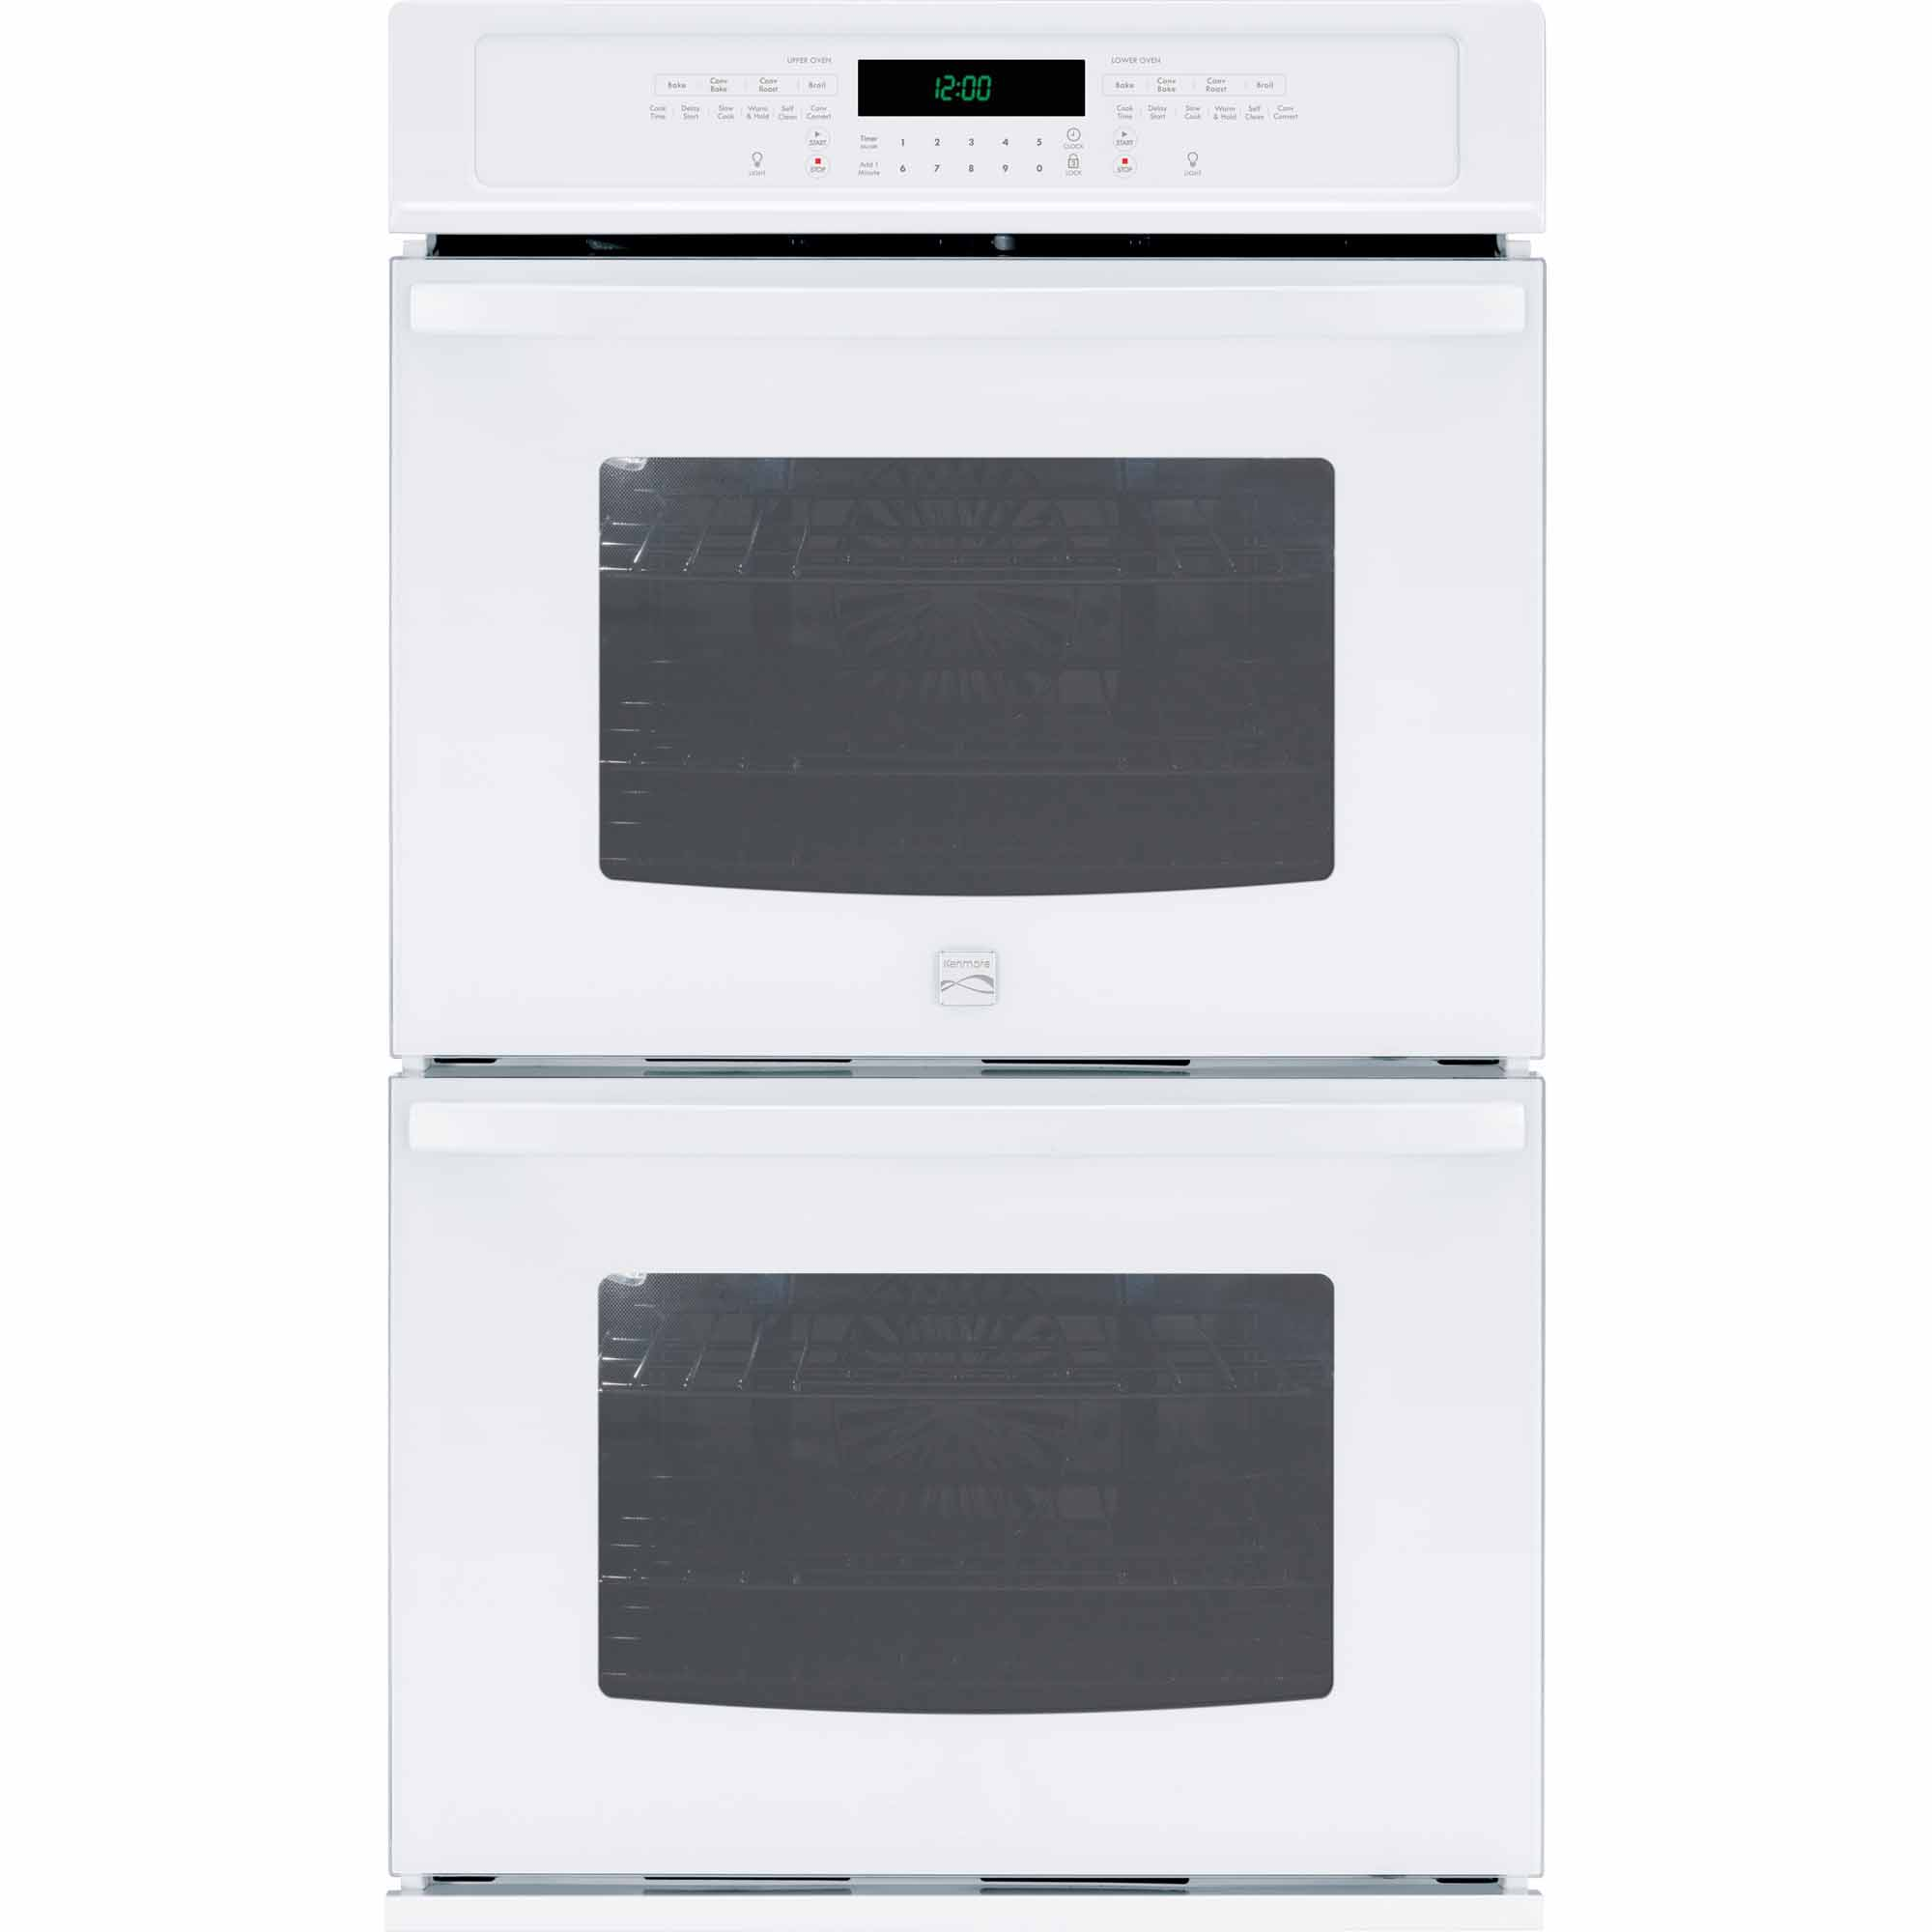 Kenmore 49532 30 Self-Clean Double Electric Wall Oven w/ Convection - White